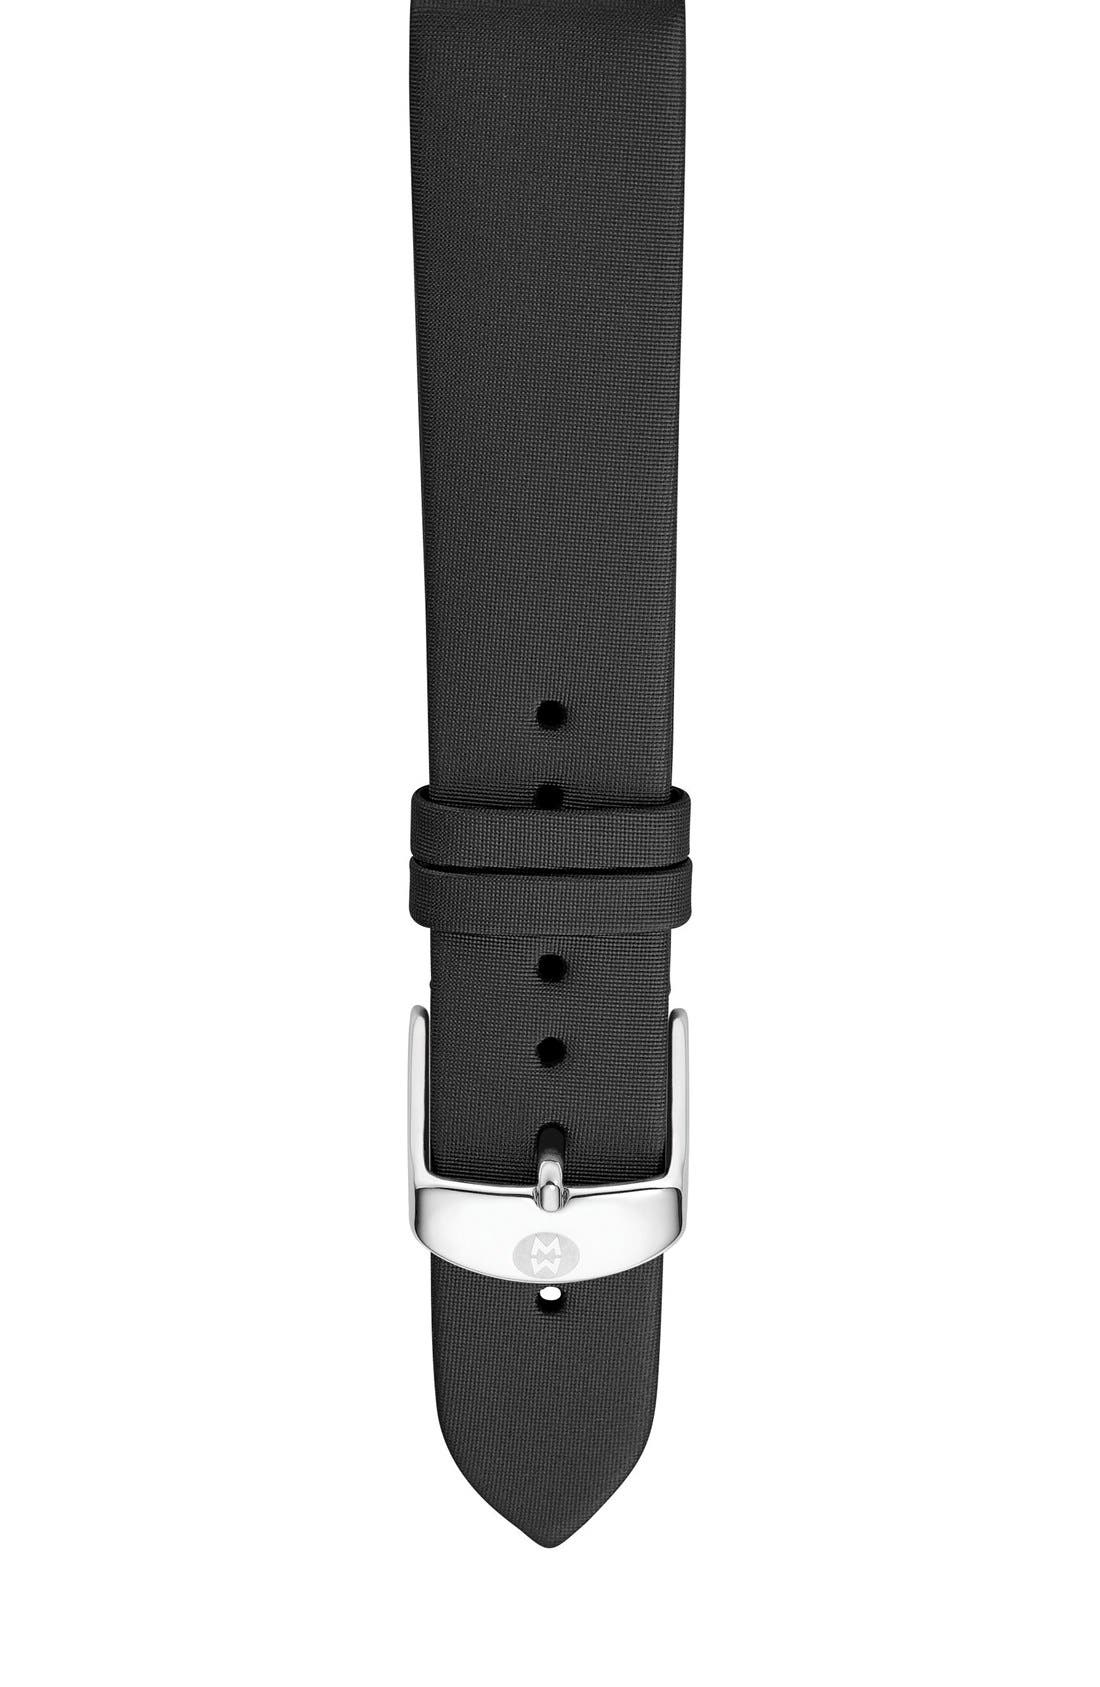 16mm Satin Watch Strap,                         Main,                         color, BLACK